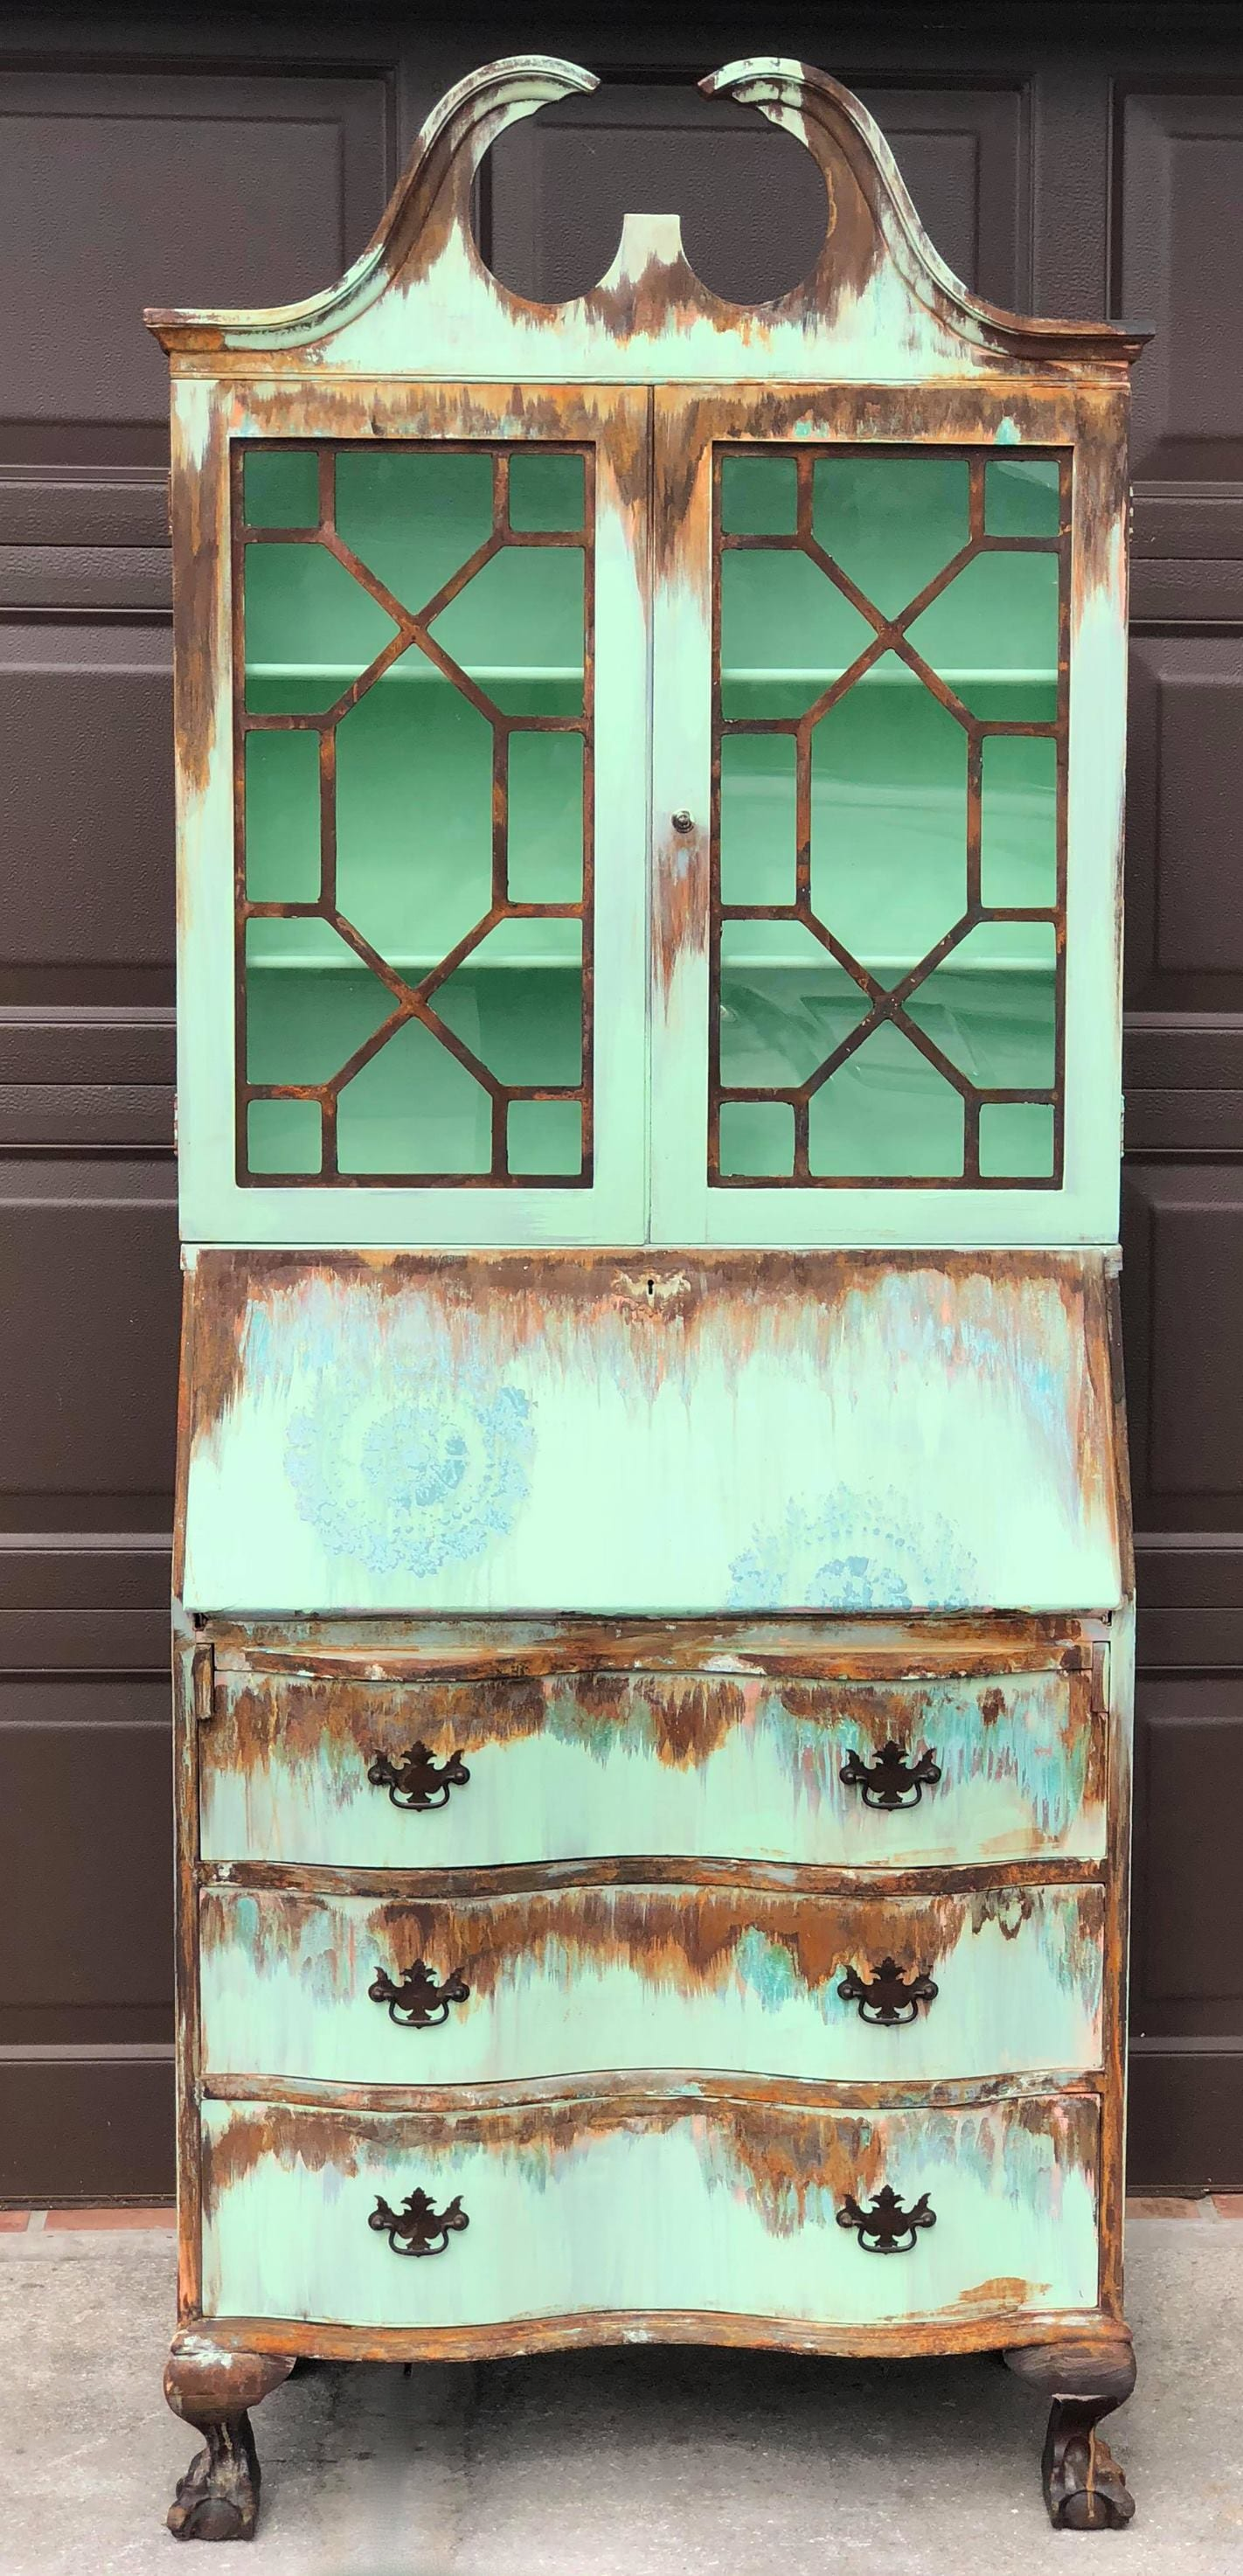 Vintage Tide Decor - Rustic Hutch Makeover